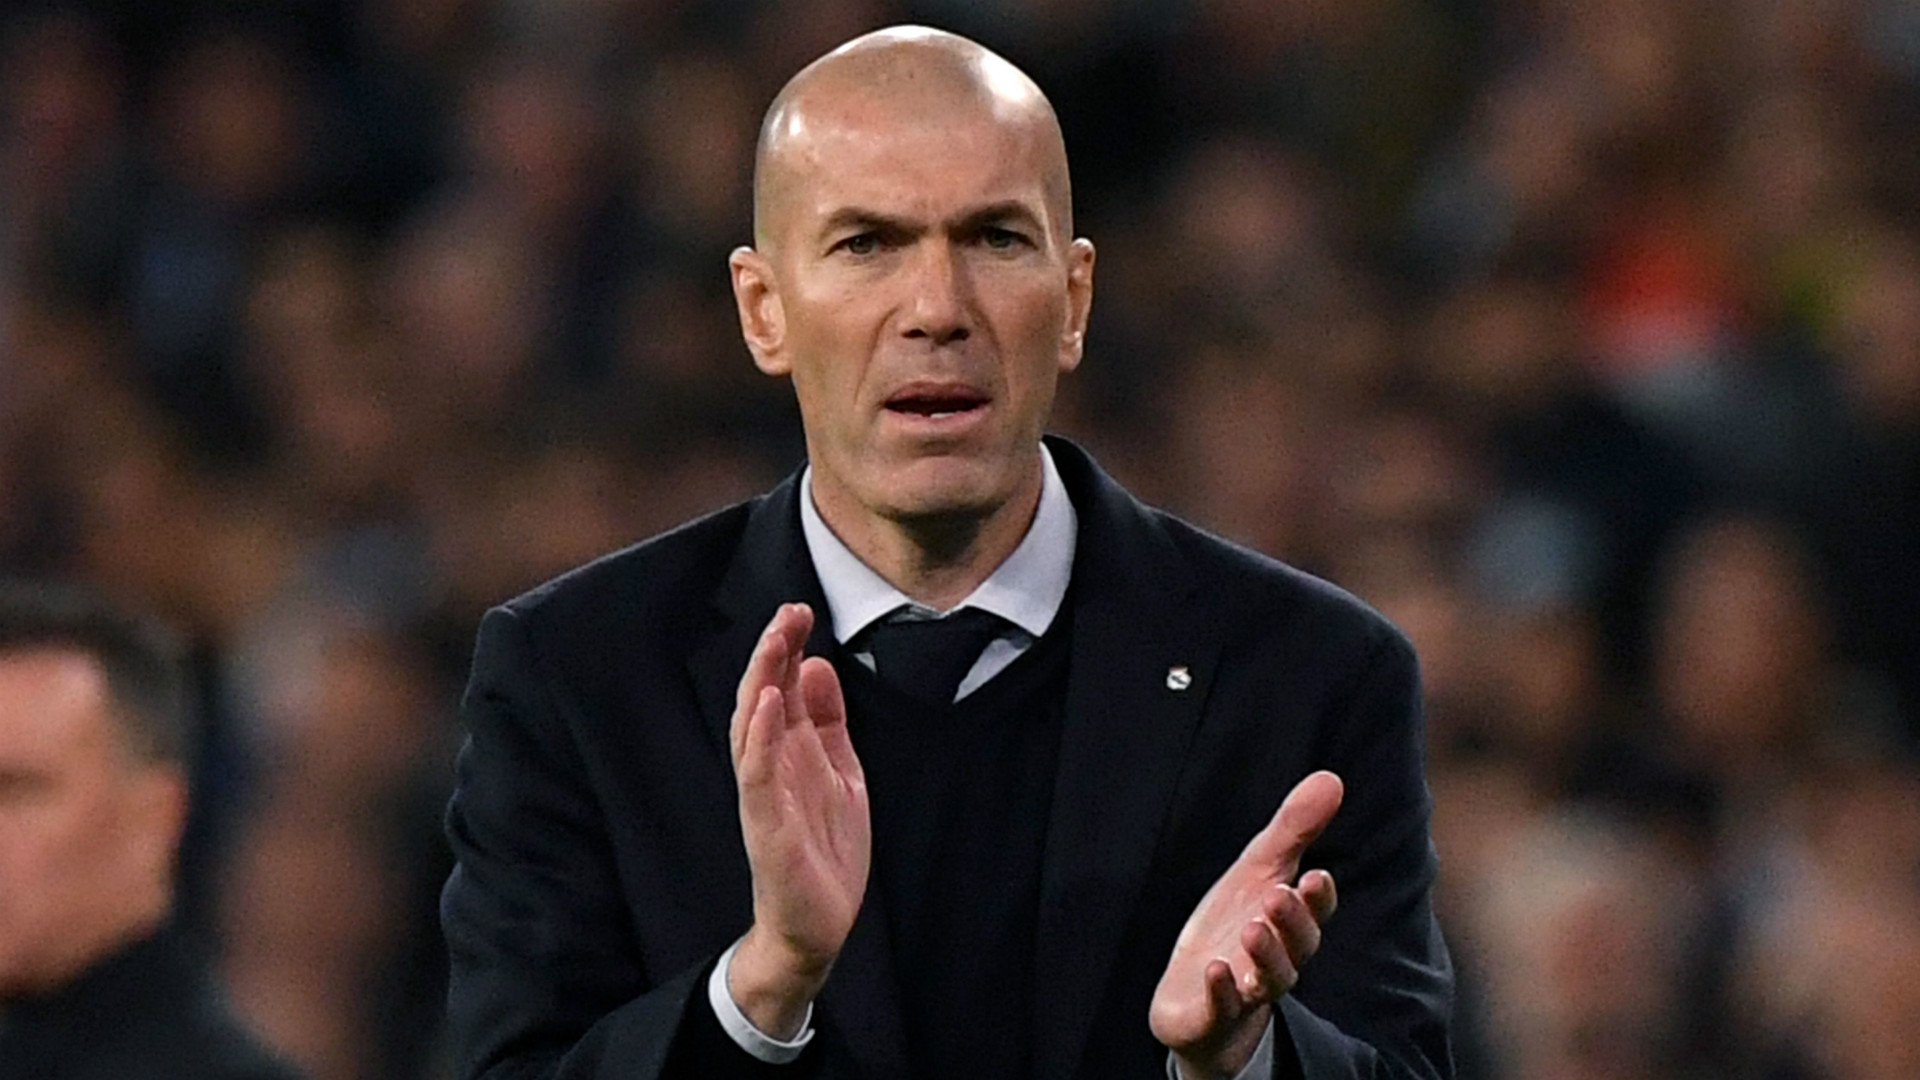 Zidane shuts down question about Real Madrid signings after 'complicated' win